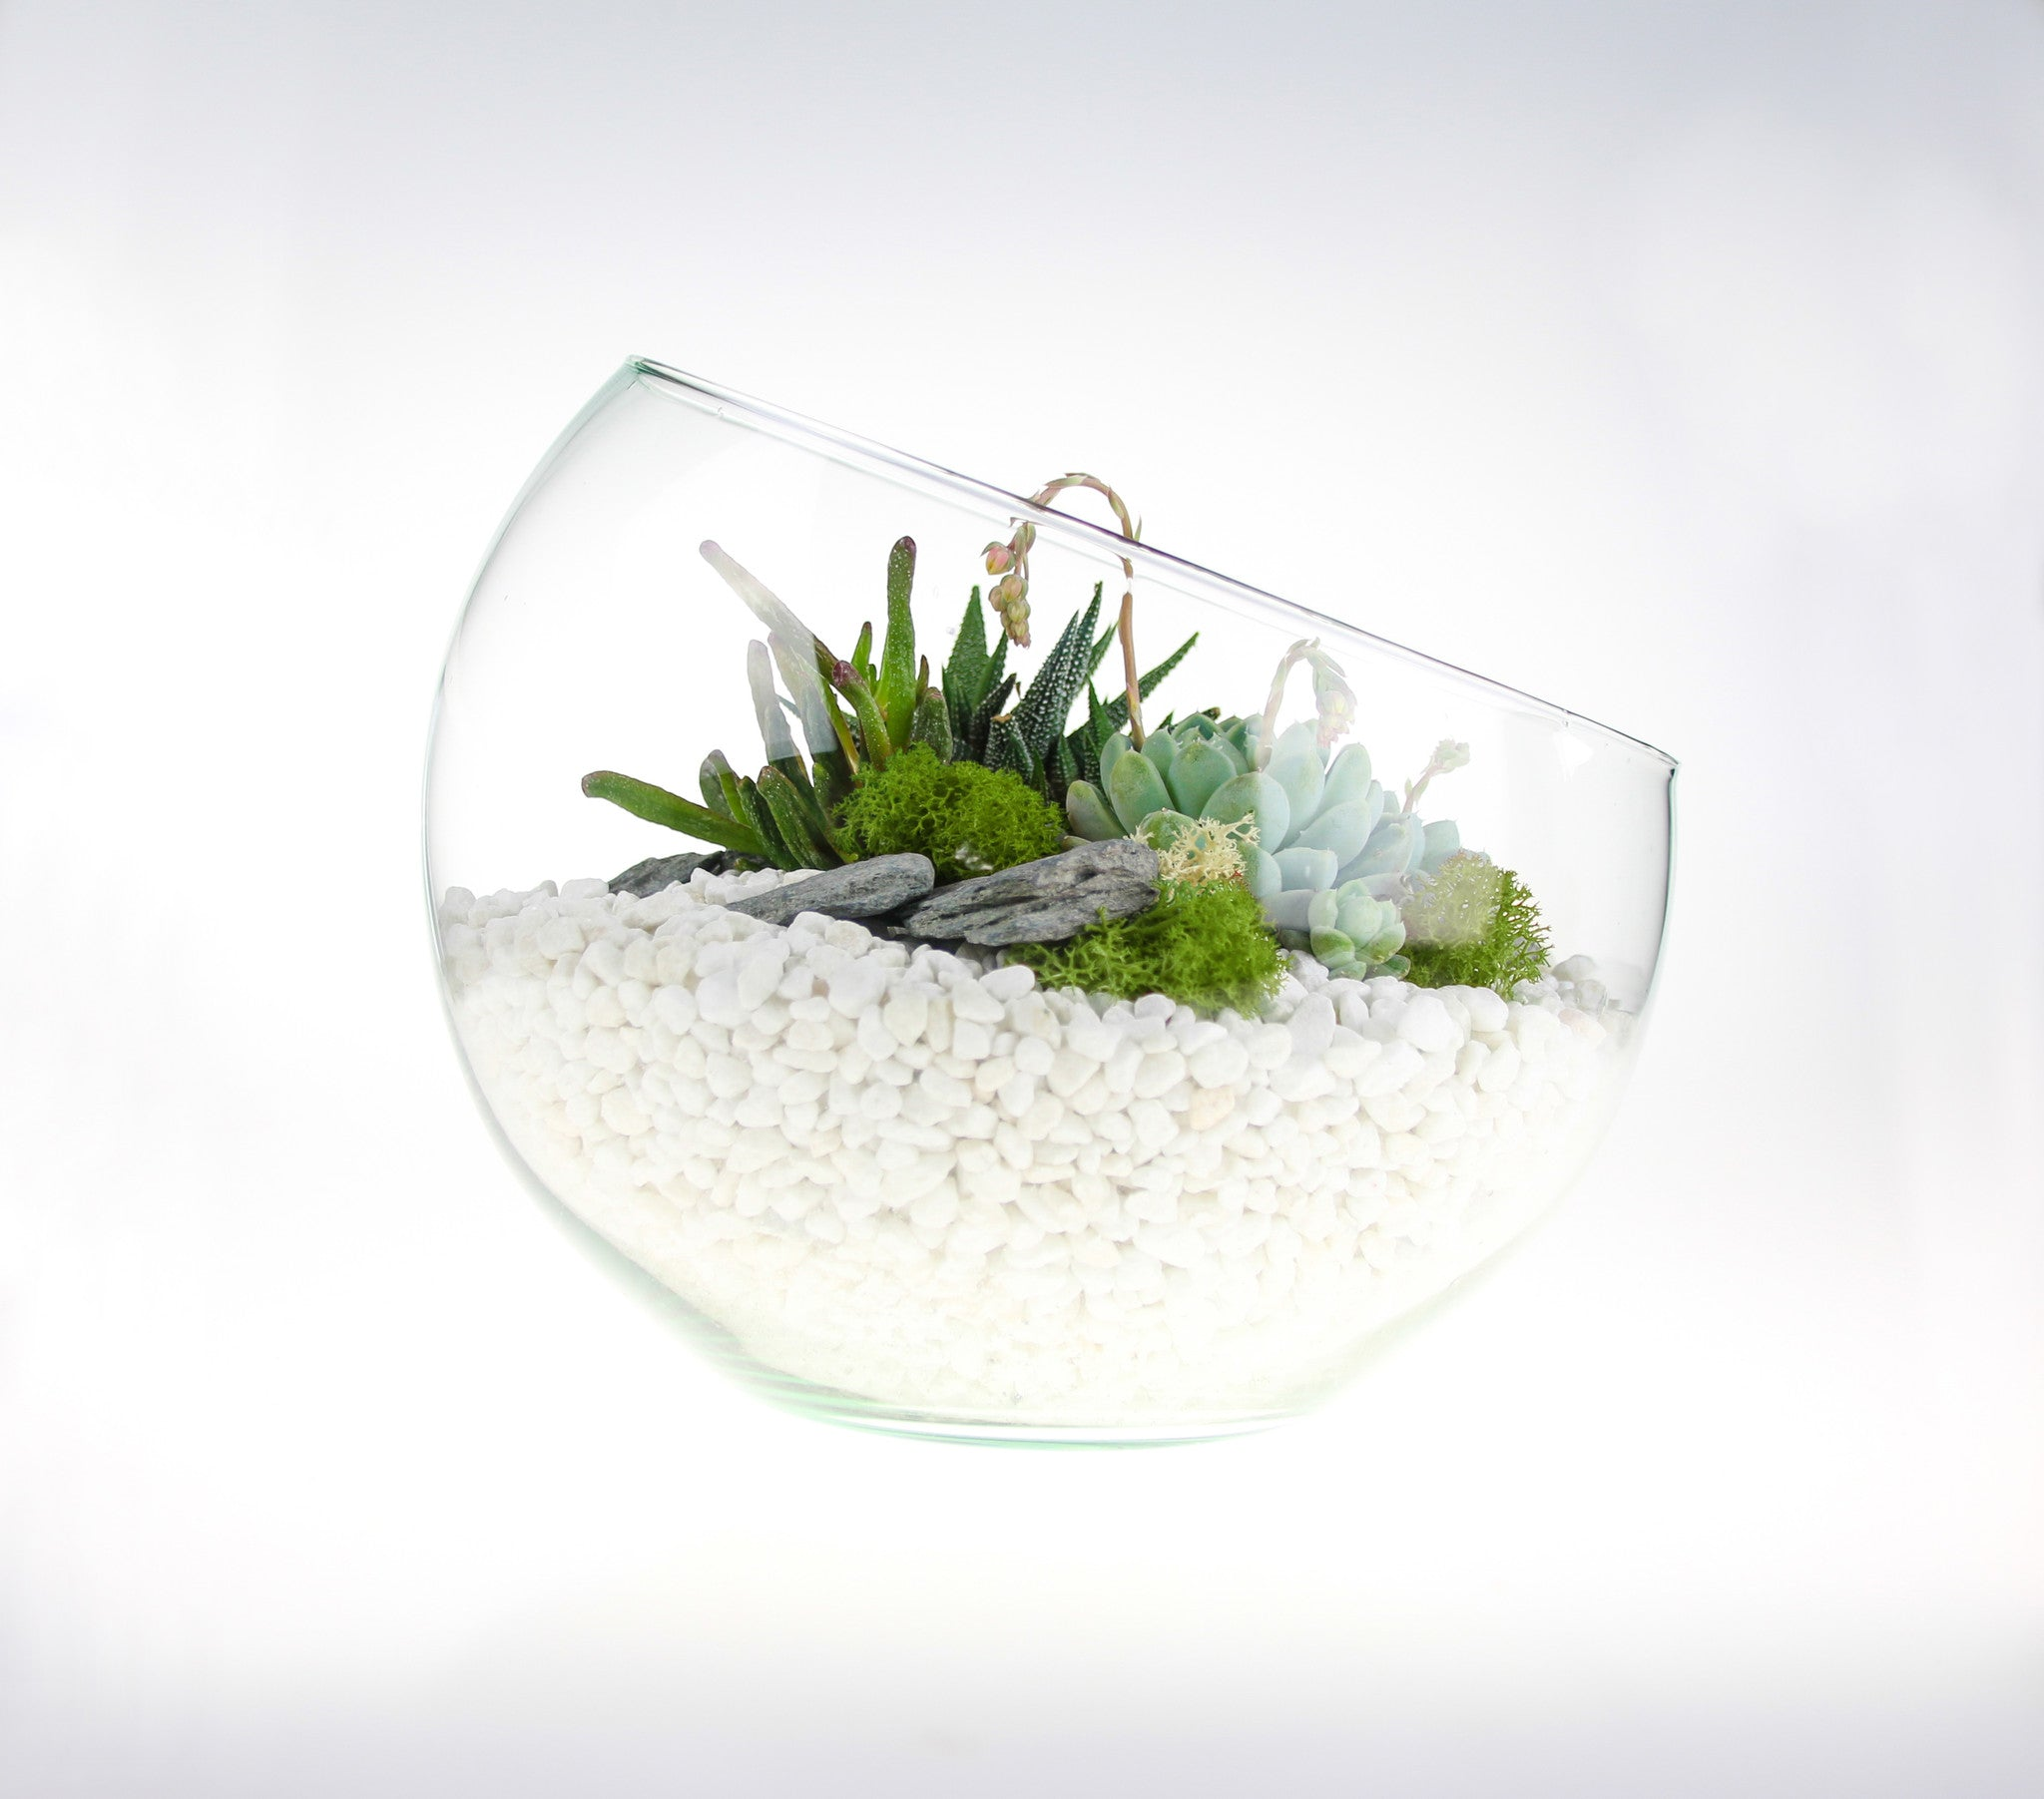 Large Angled Glass Bowl Terrarium Kit With Succulent Plants Home